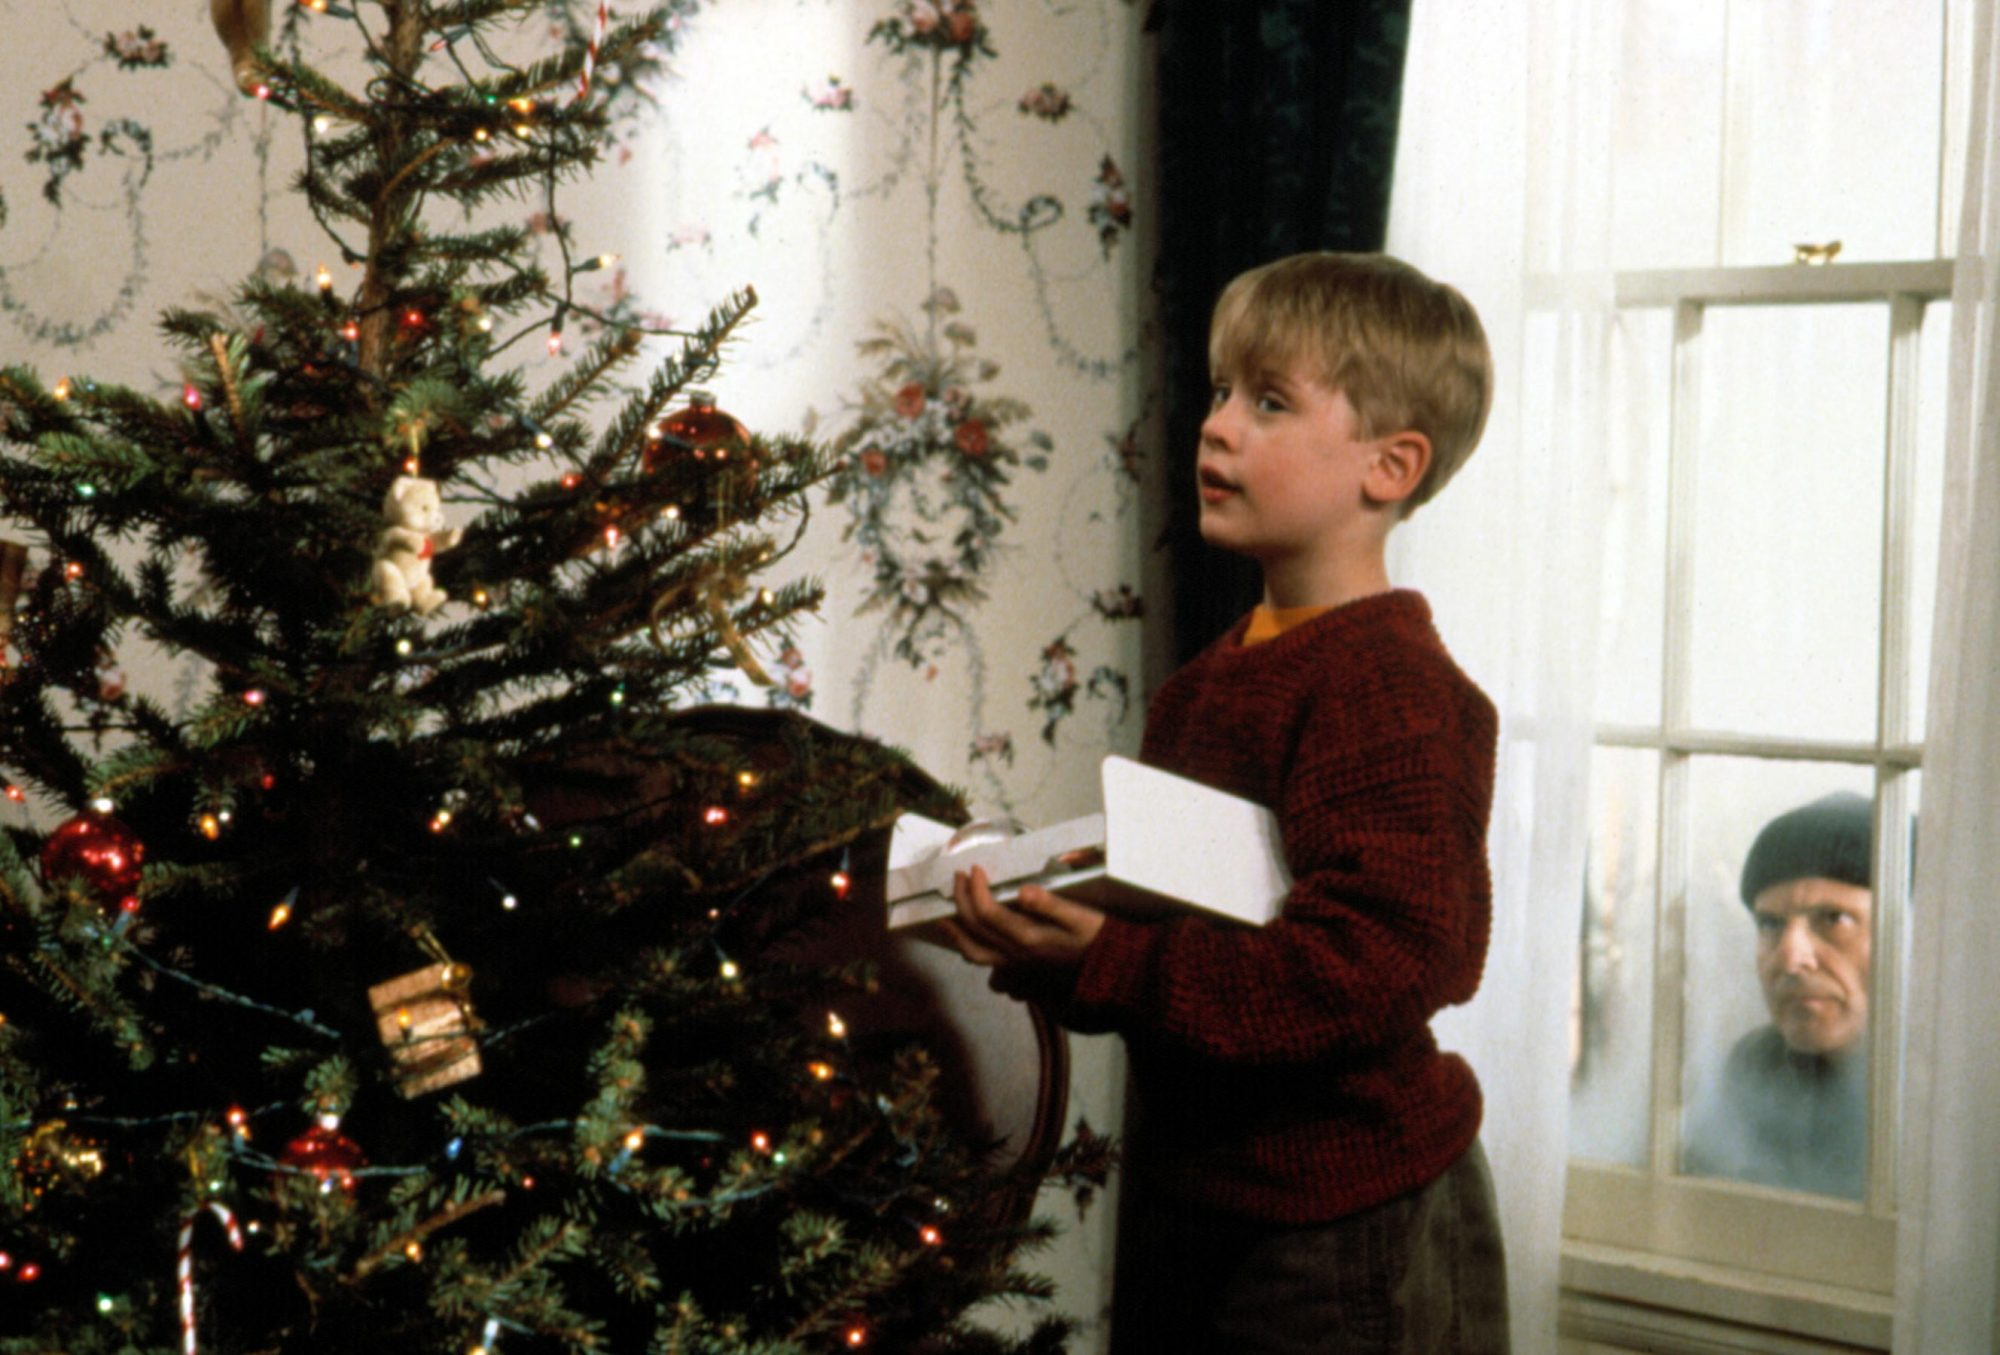 HOME ALONE, Macaulay Culkin, Joe Pesci, 1990. TM and Copyright (c) 20th Century Fox Film Corp. All r